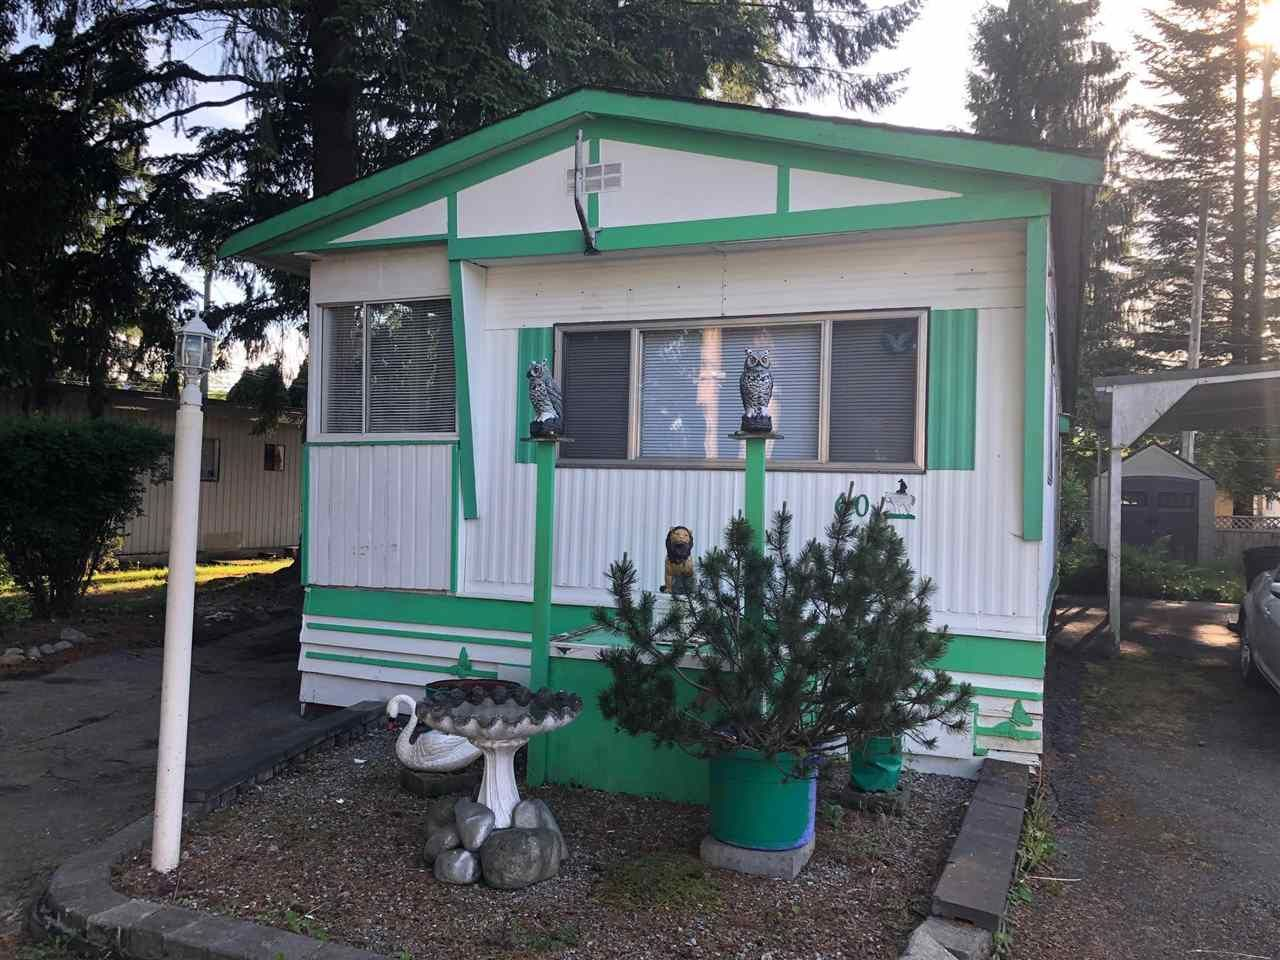 """Main Photo: 60 21163 W LOUGHEED Highway in Maple Ridge: Southwest Maple Ridge Manufactured Home for sale in """"Val Maria Mobile Home Park"""" : MLS®# R2583446"""